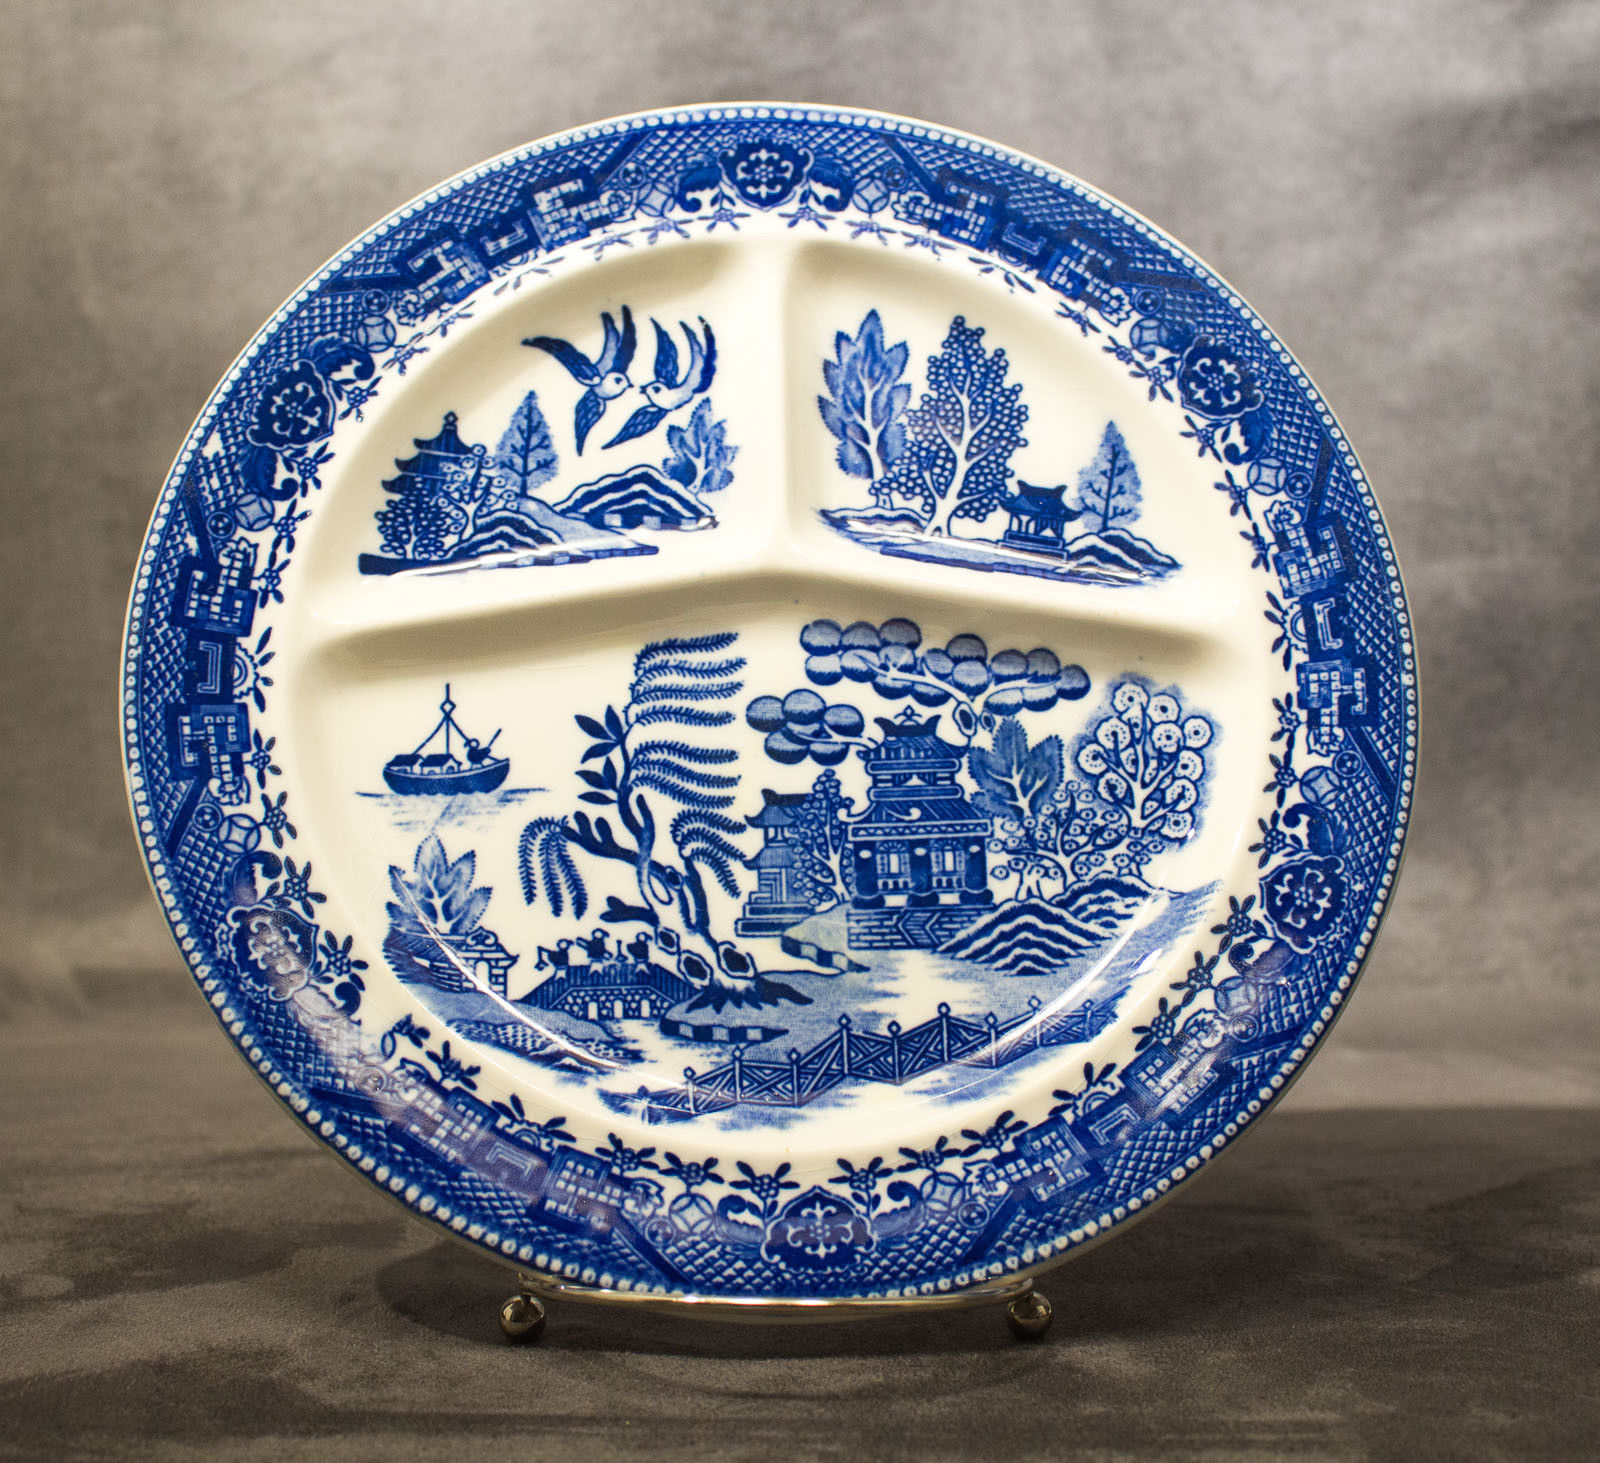 S l1600. S l1600. Antique Moriyama Blue Willow China Divided Dinner Plate ... & Antique Moriyama Blue Willow China Divided and 50 similar items